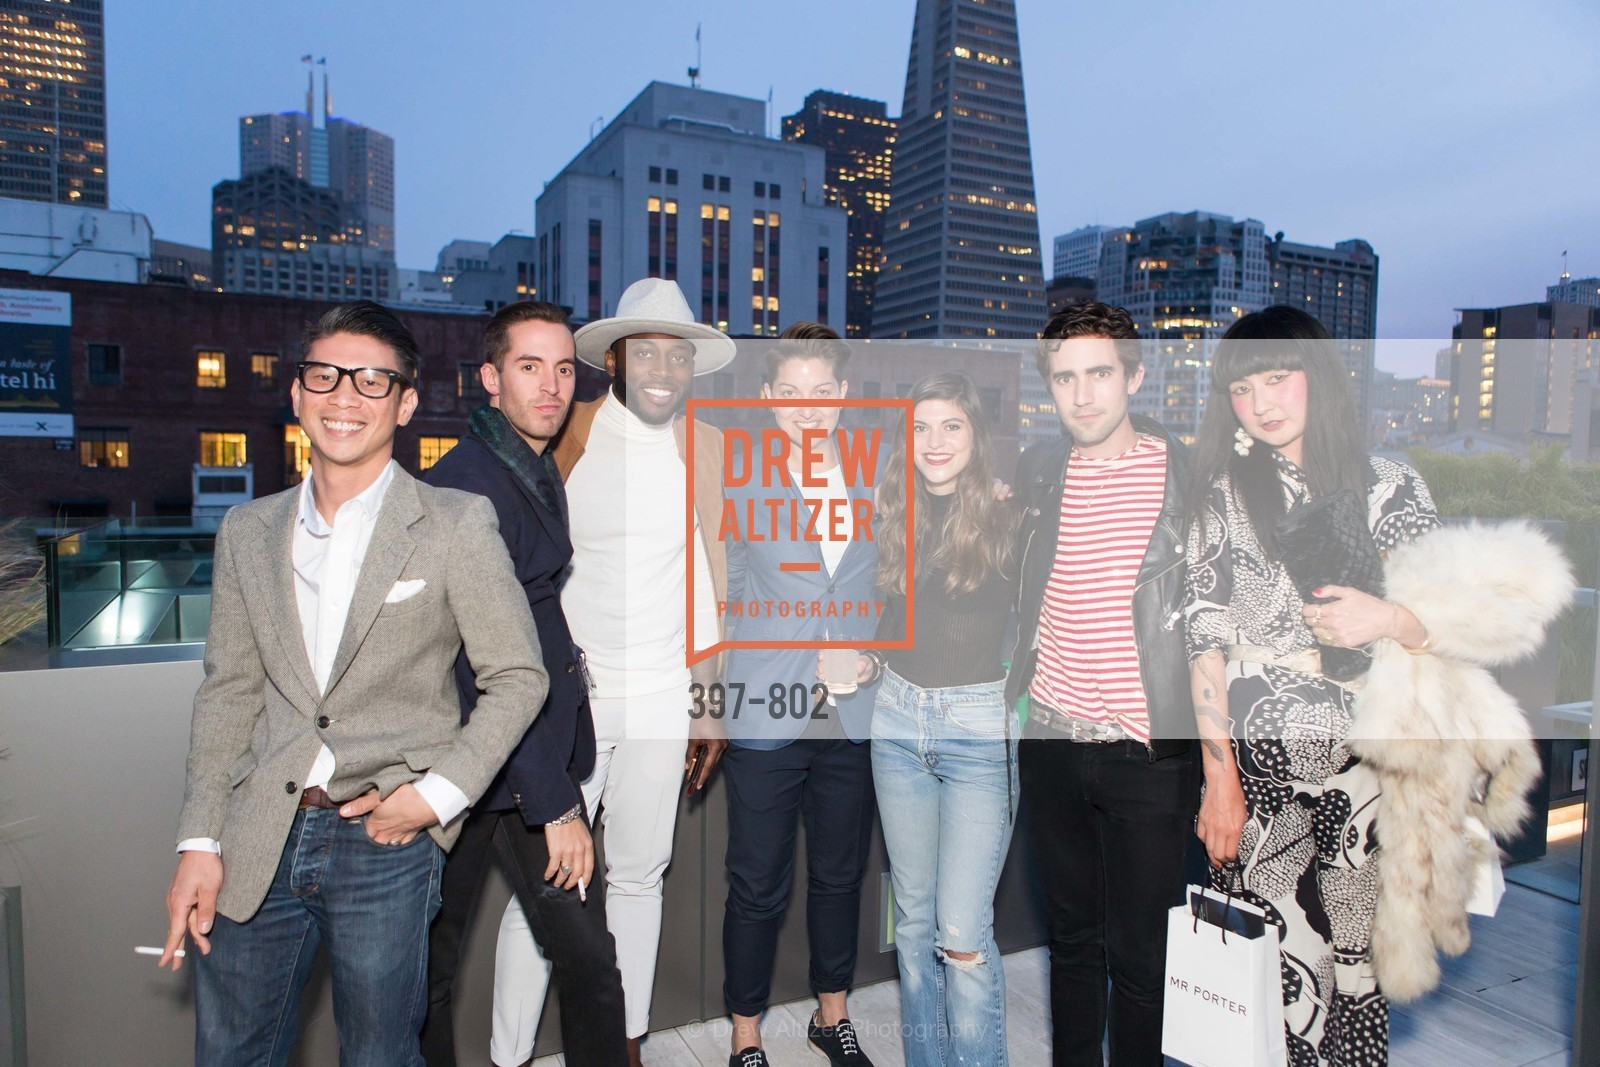 Fidel Lirio, Steven Candelino, Phillip Holmes, Tulio Leyva, Liz Sharnet, Wyatt Huff, Ringka, MR PORTER Celebrate The San Francisco Issue of The Journal, US, April 24th, 2015,Drew Altizer, Drew Altizer Photography, full-service agency, private events, San Francisco photographer, photographer california